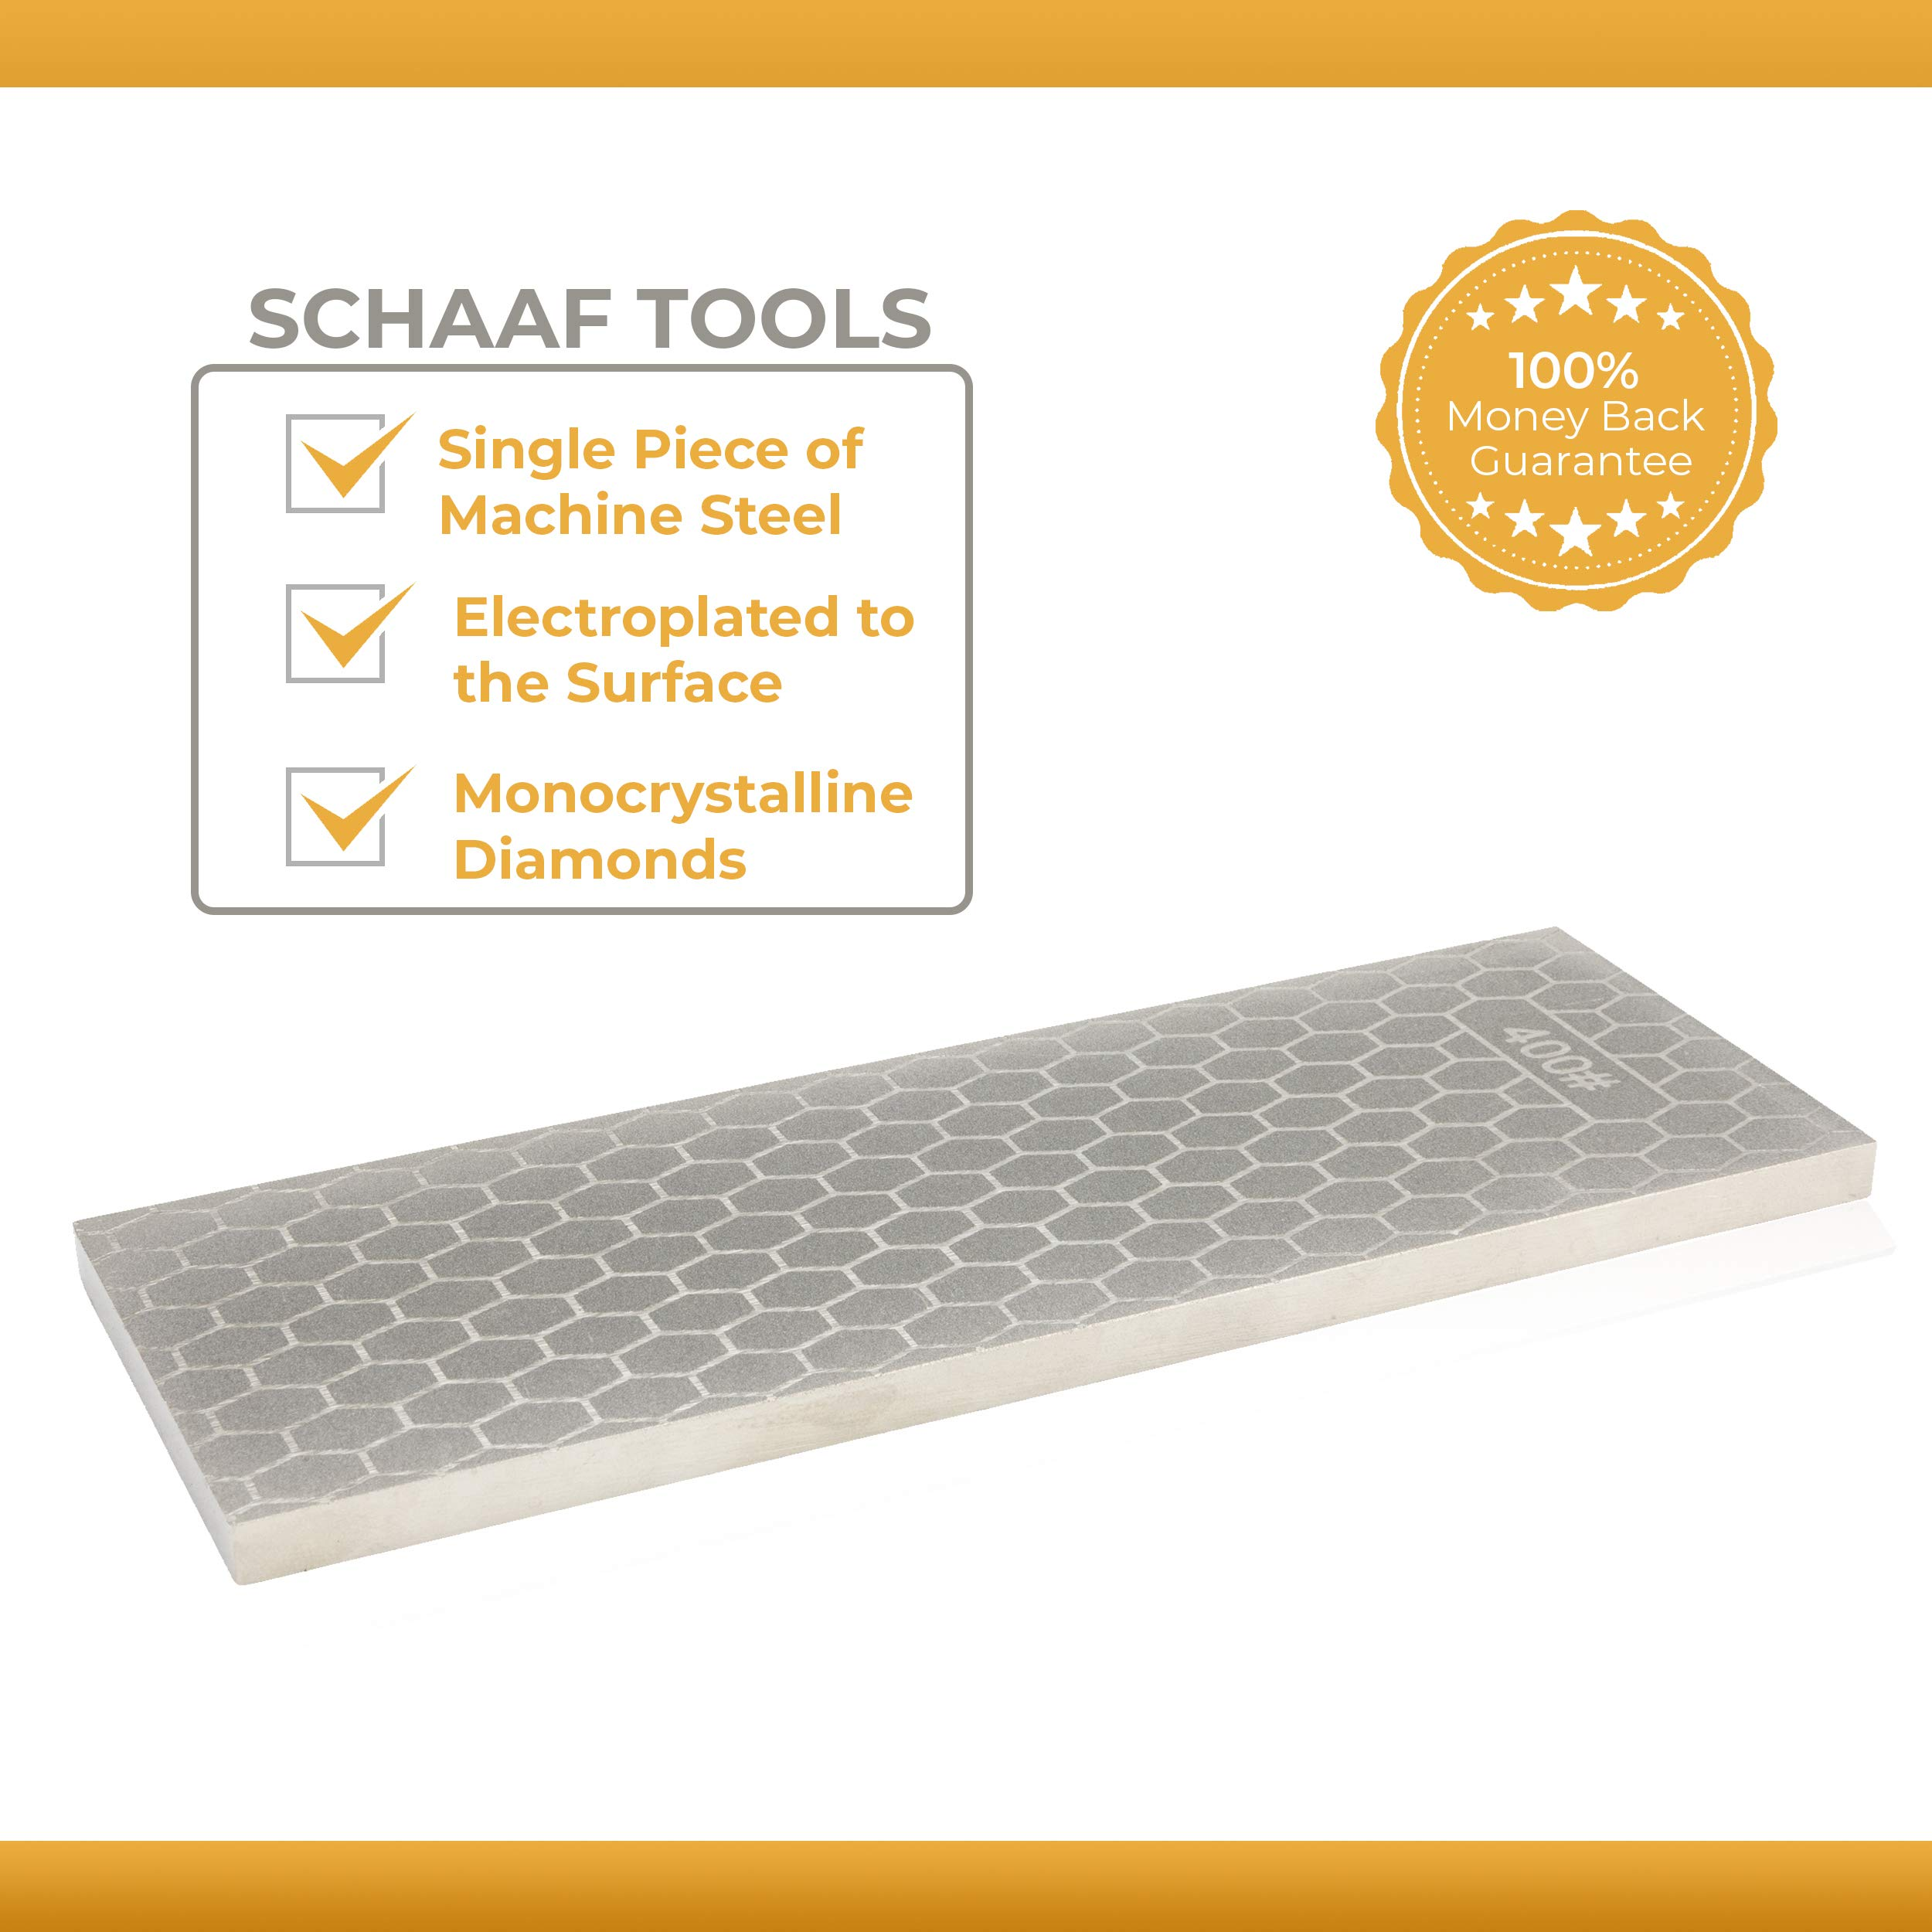 Schaaf Tools 400/1000 Grit Diamond Sharpening Stone   8 x 3 Inches   Universal Base   eBook Included by Schaaf Wood Carving Tools (Image #1)